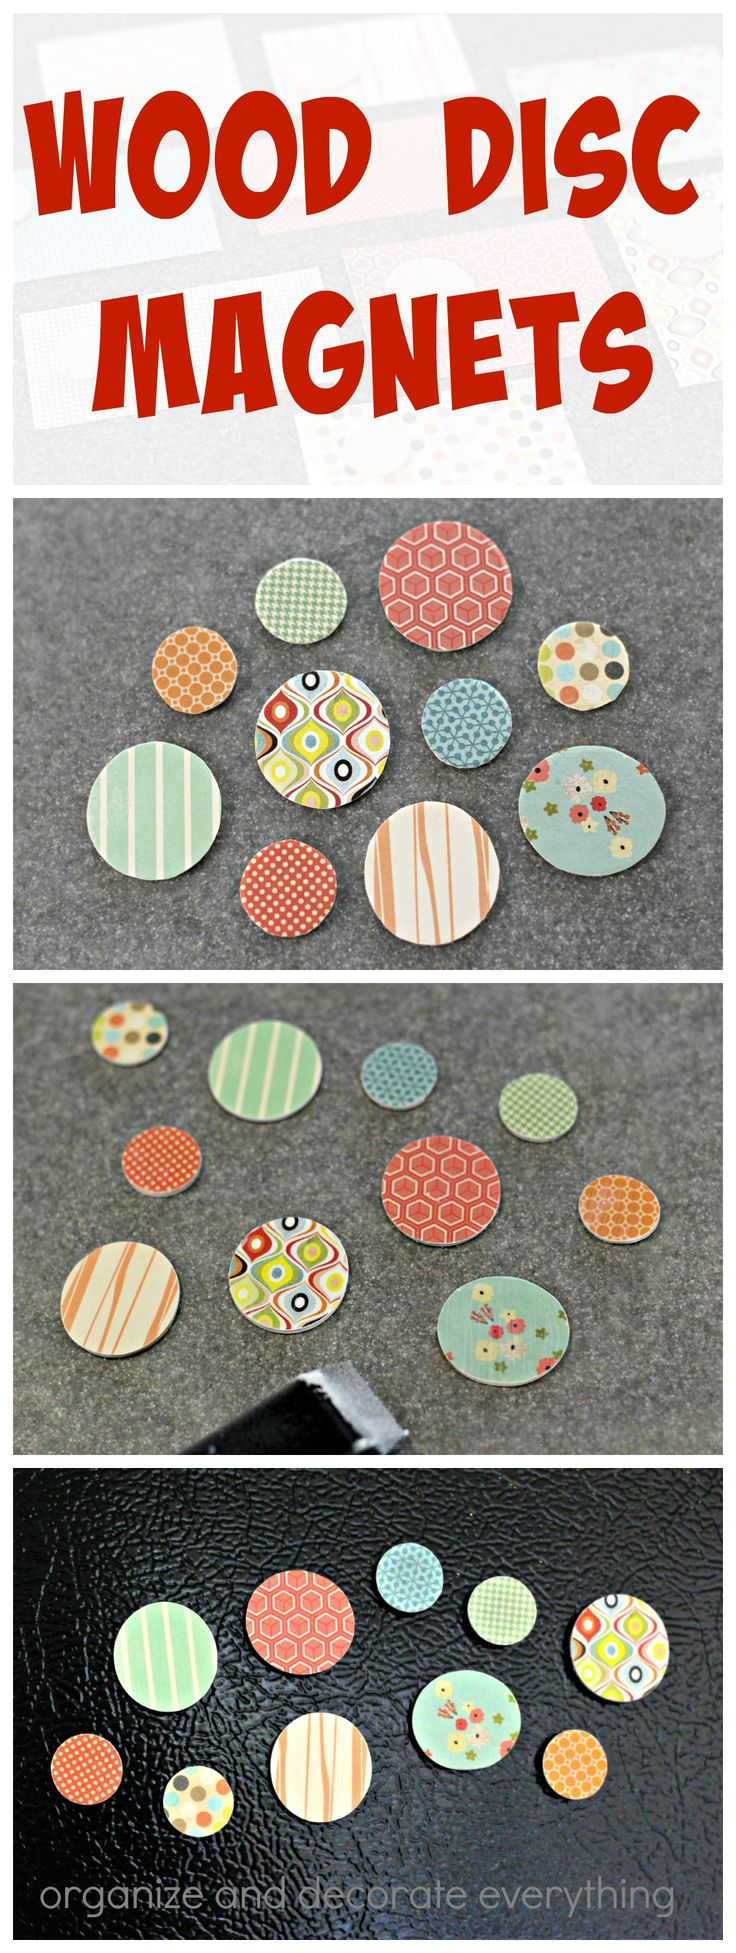 Use your paper scraps to make these cute and useful Wood Disc Magnets.